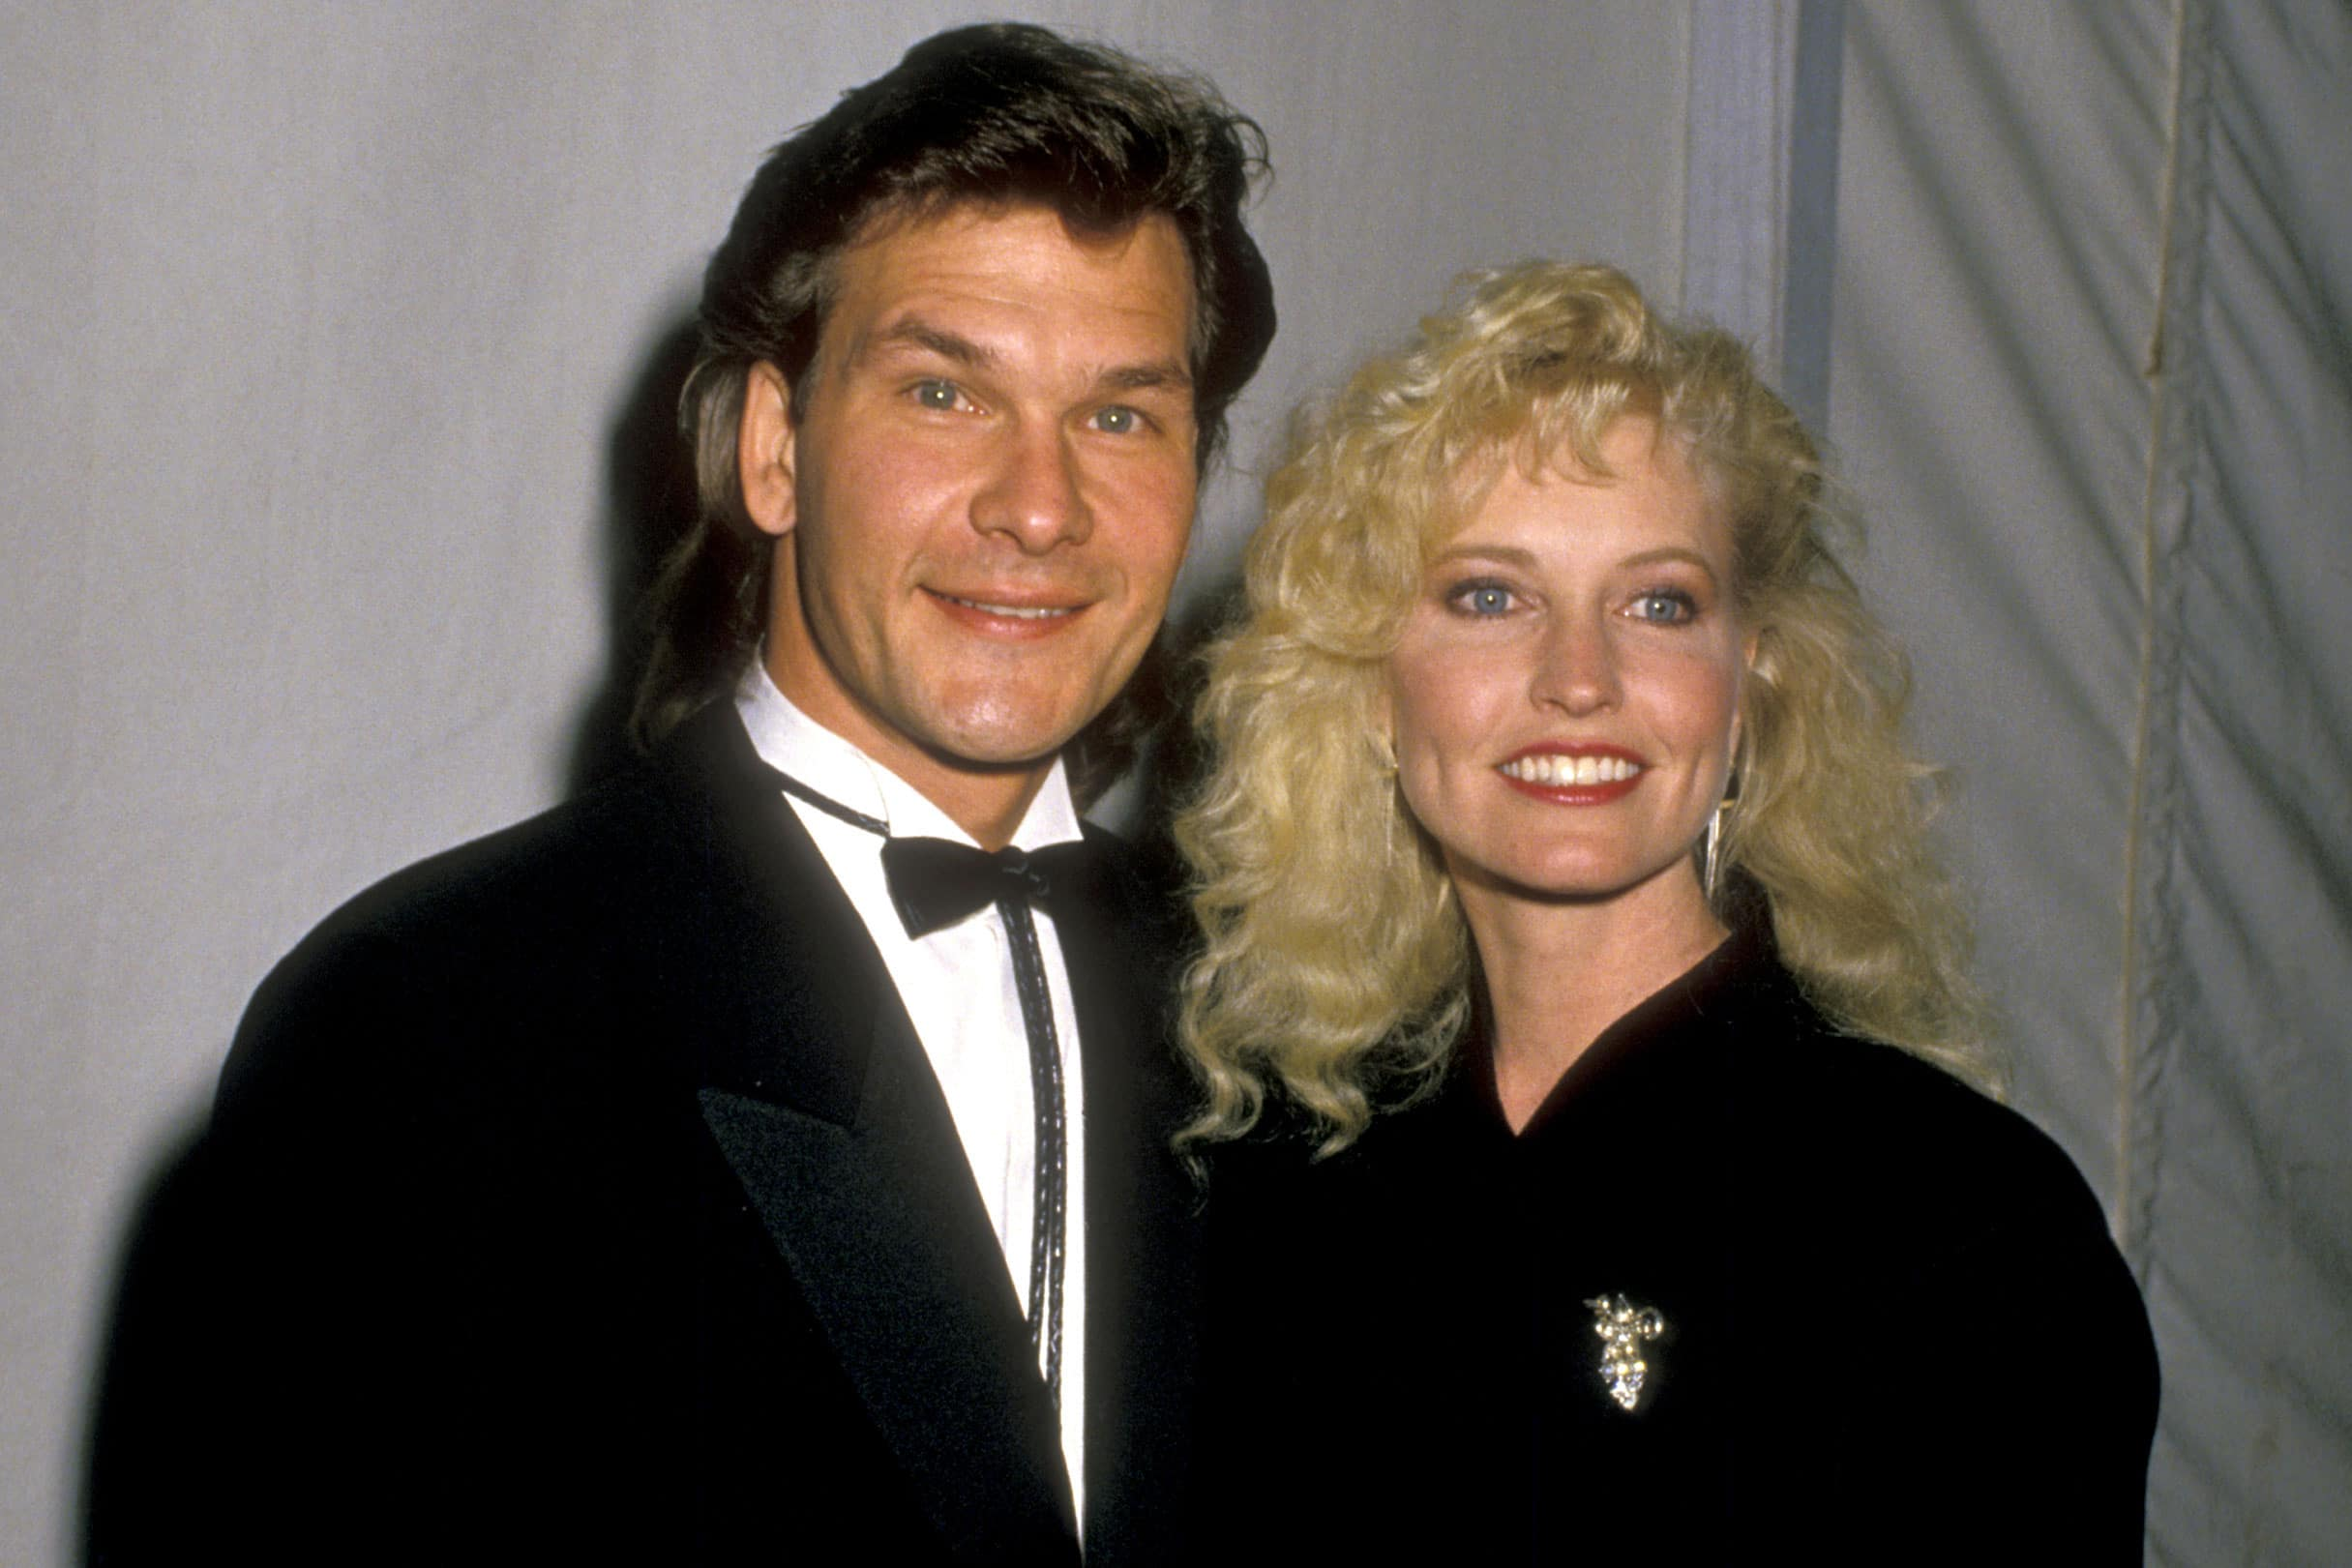 Patrick Swayze American Actor, Dancer, Singer, Songwriter